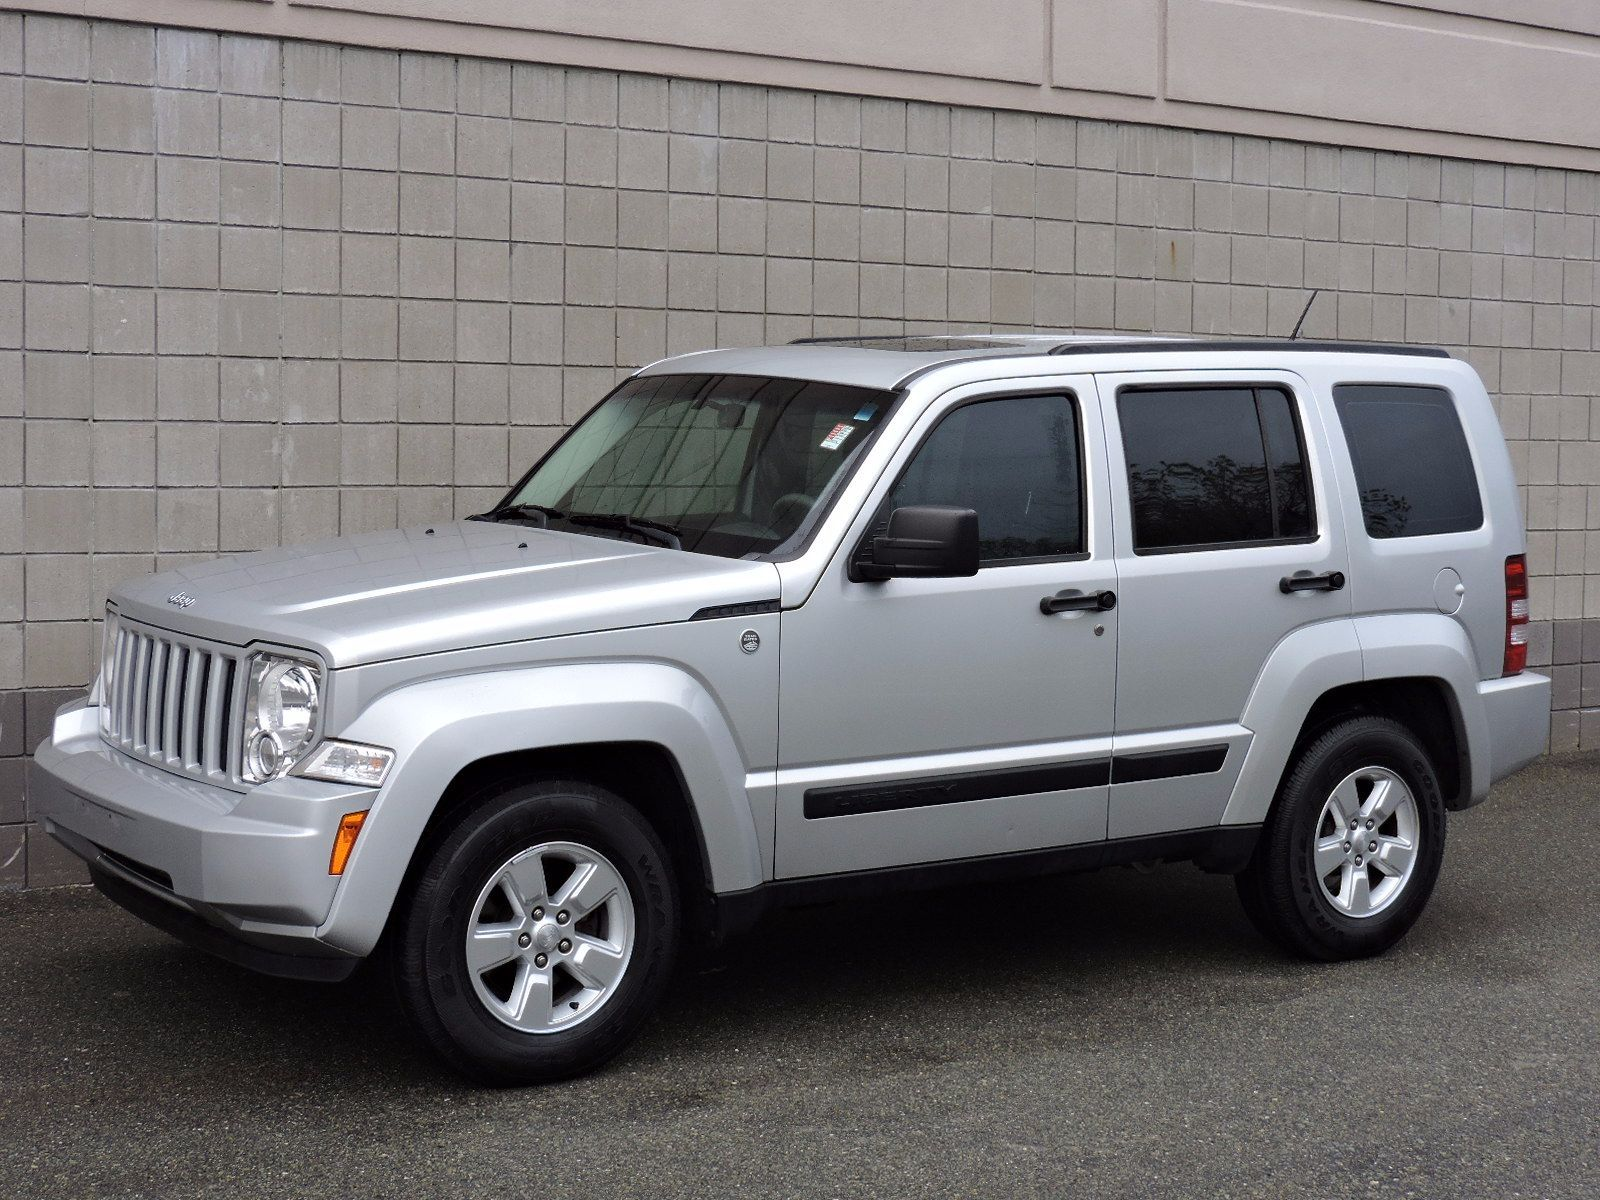 jeep liberty 2015 price 2018 2019 new car reviews by language kompis. Black Bedroom Furniture Sets. Home Design Ideas